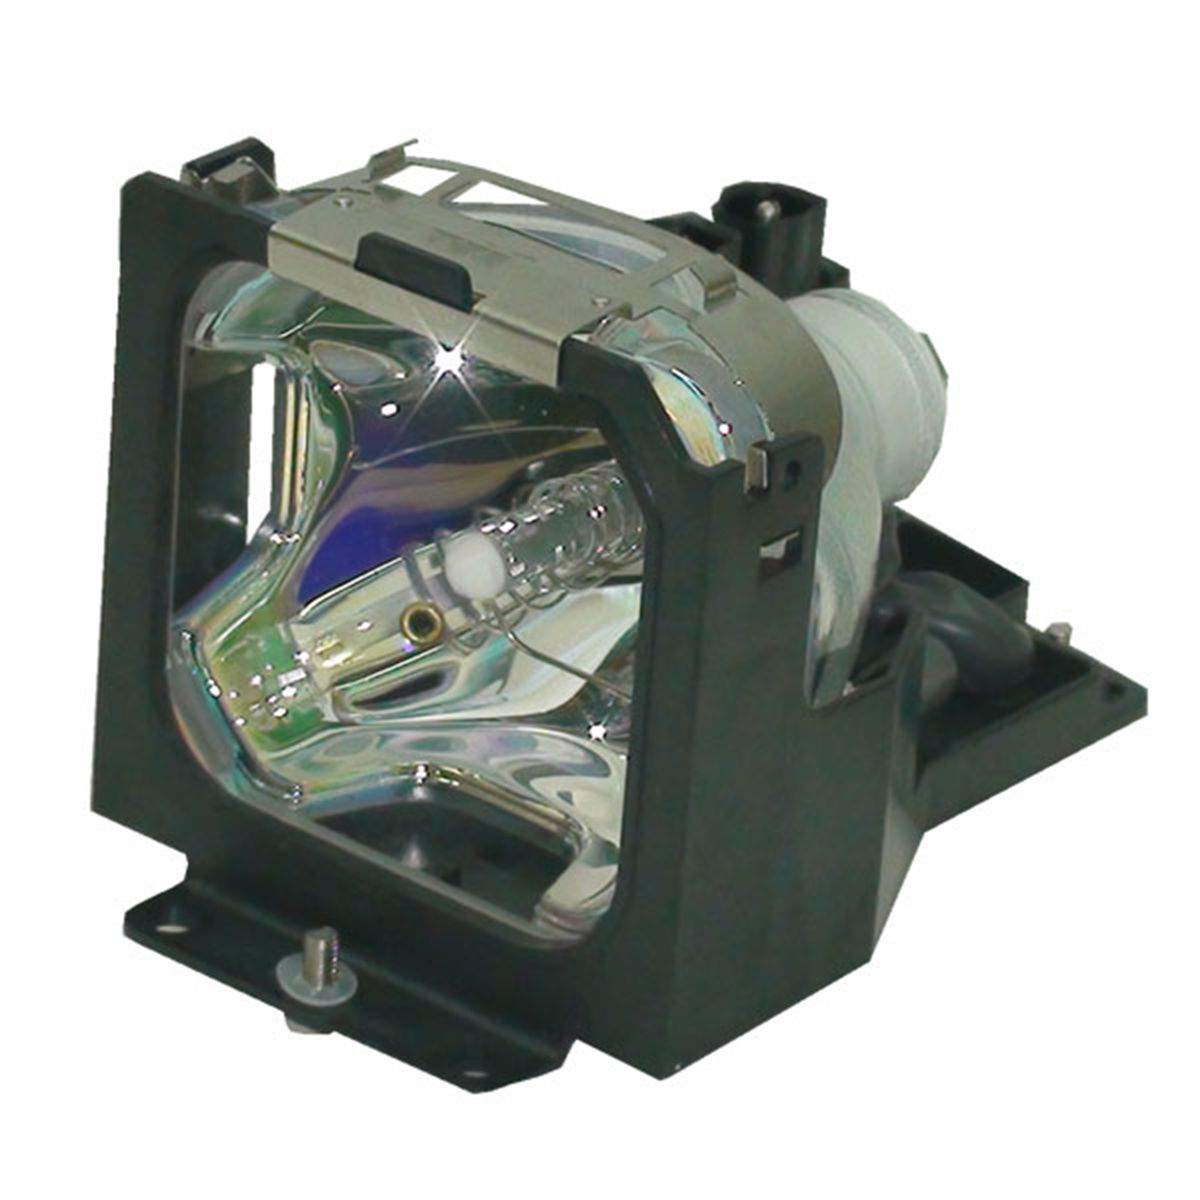 Projector Lamp Bulb POA-LMP54 POALMP54 LMP54 610-302-5933 for SANYO PLV-Z1 PLV-Z1BL PLV-Z1C with housing lamp housing for sanyo 610 3252957 6103252957 projector dlp lcd bulb